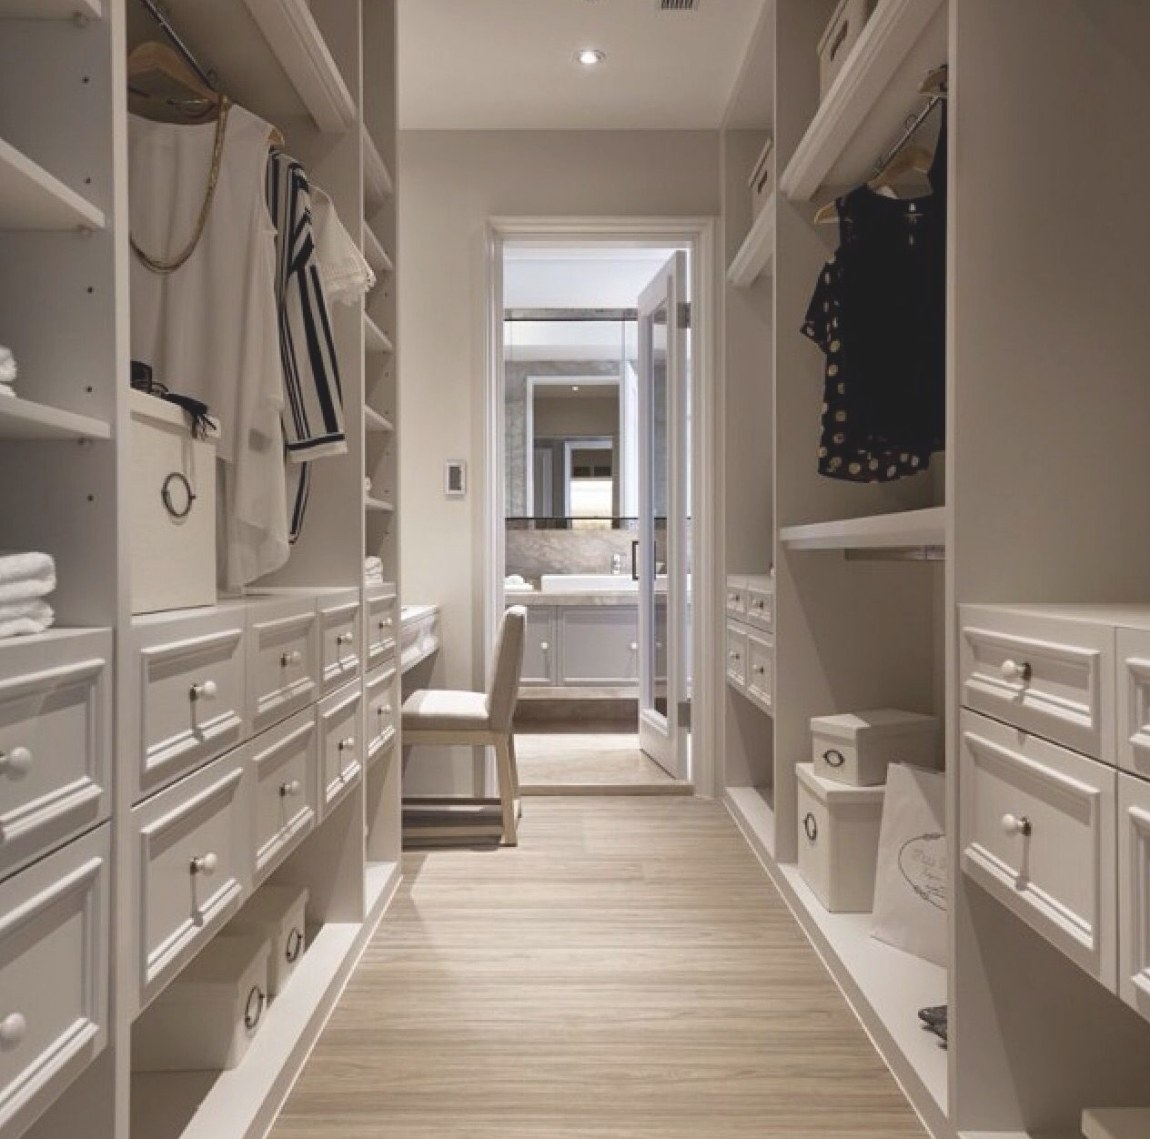 Pinantonia Verderame On The Organized Closet inside Walk Through Closet To Bathroom